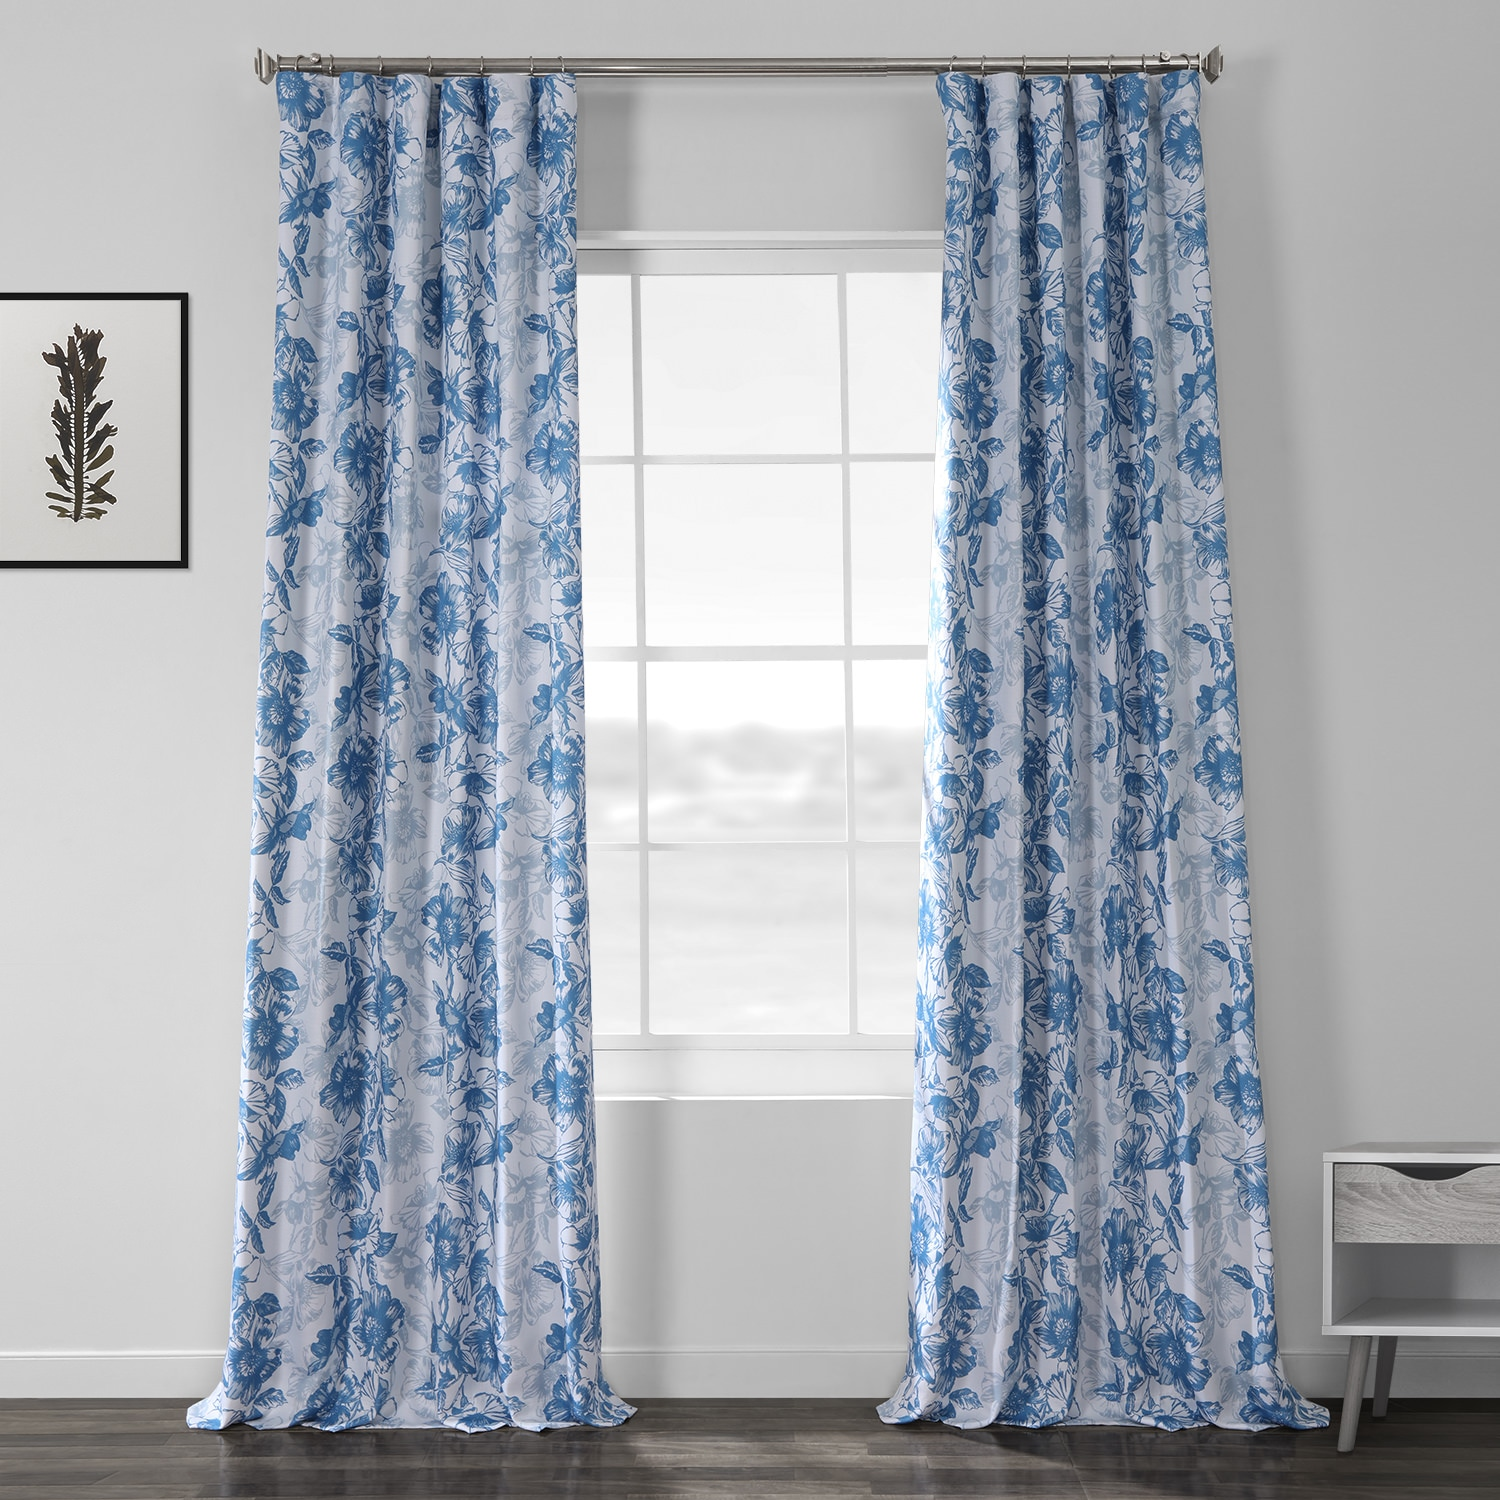 Blue Poppy Printed Linen Textured Blackout Curtain